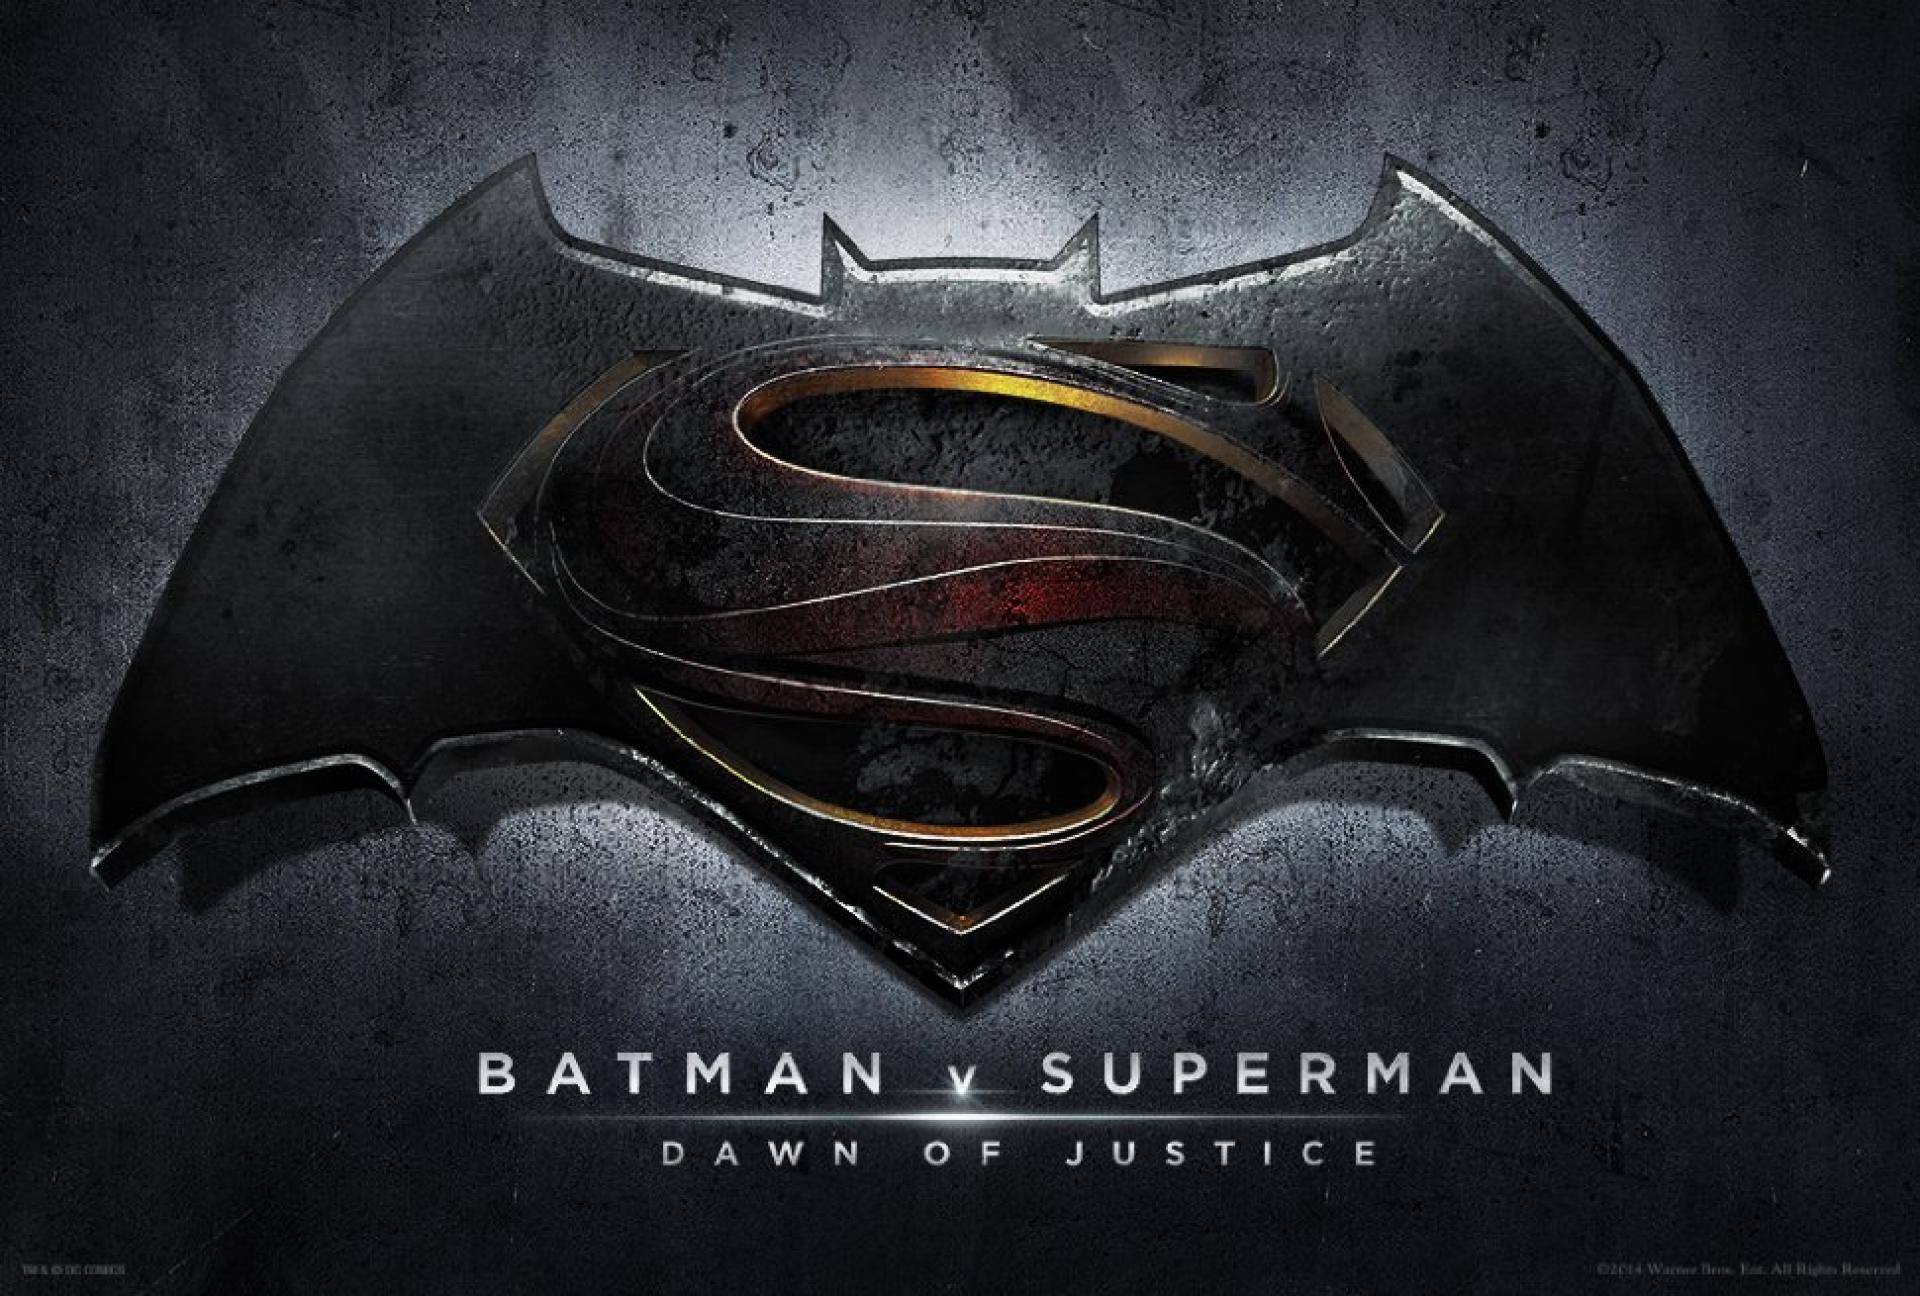 batman-v-superman-dawn-of-justice-movie-wallpaper-2-140436